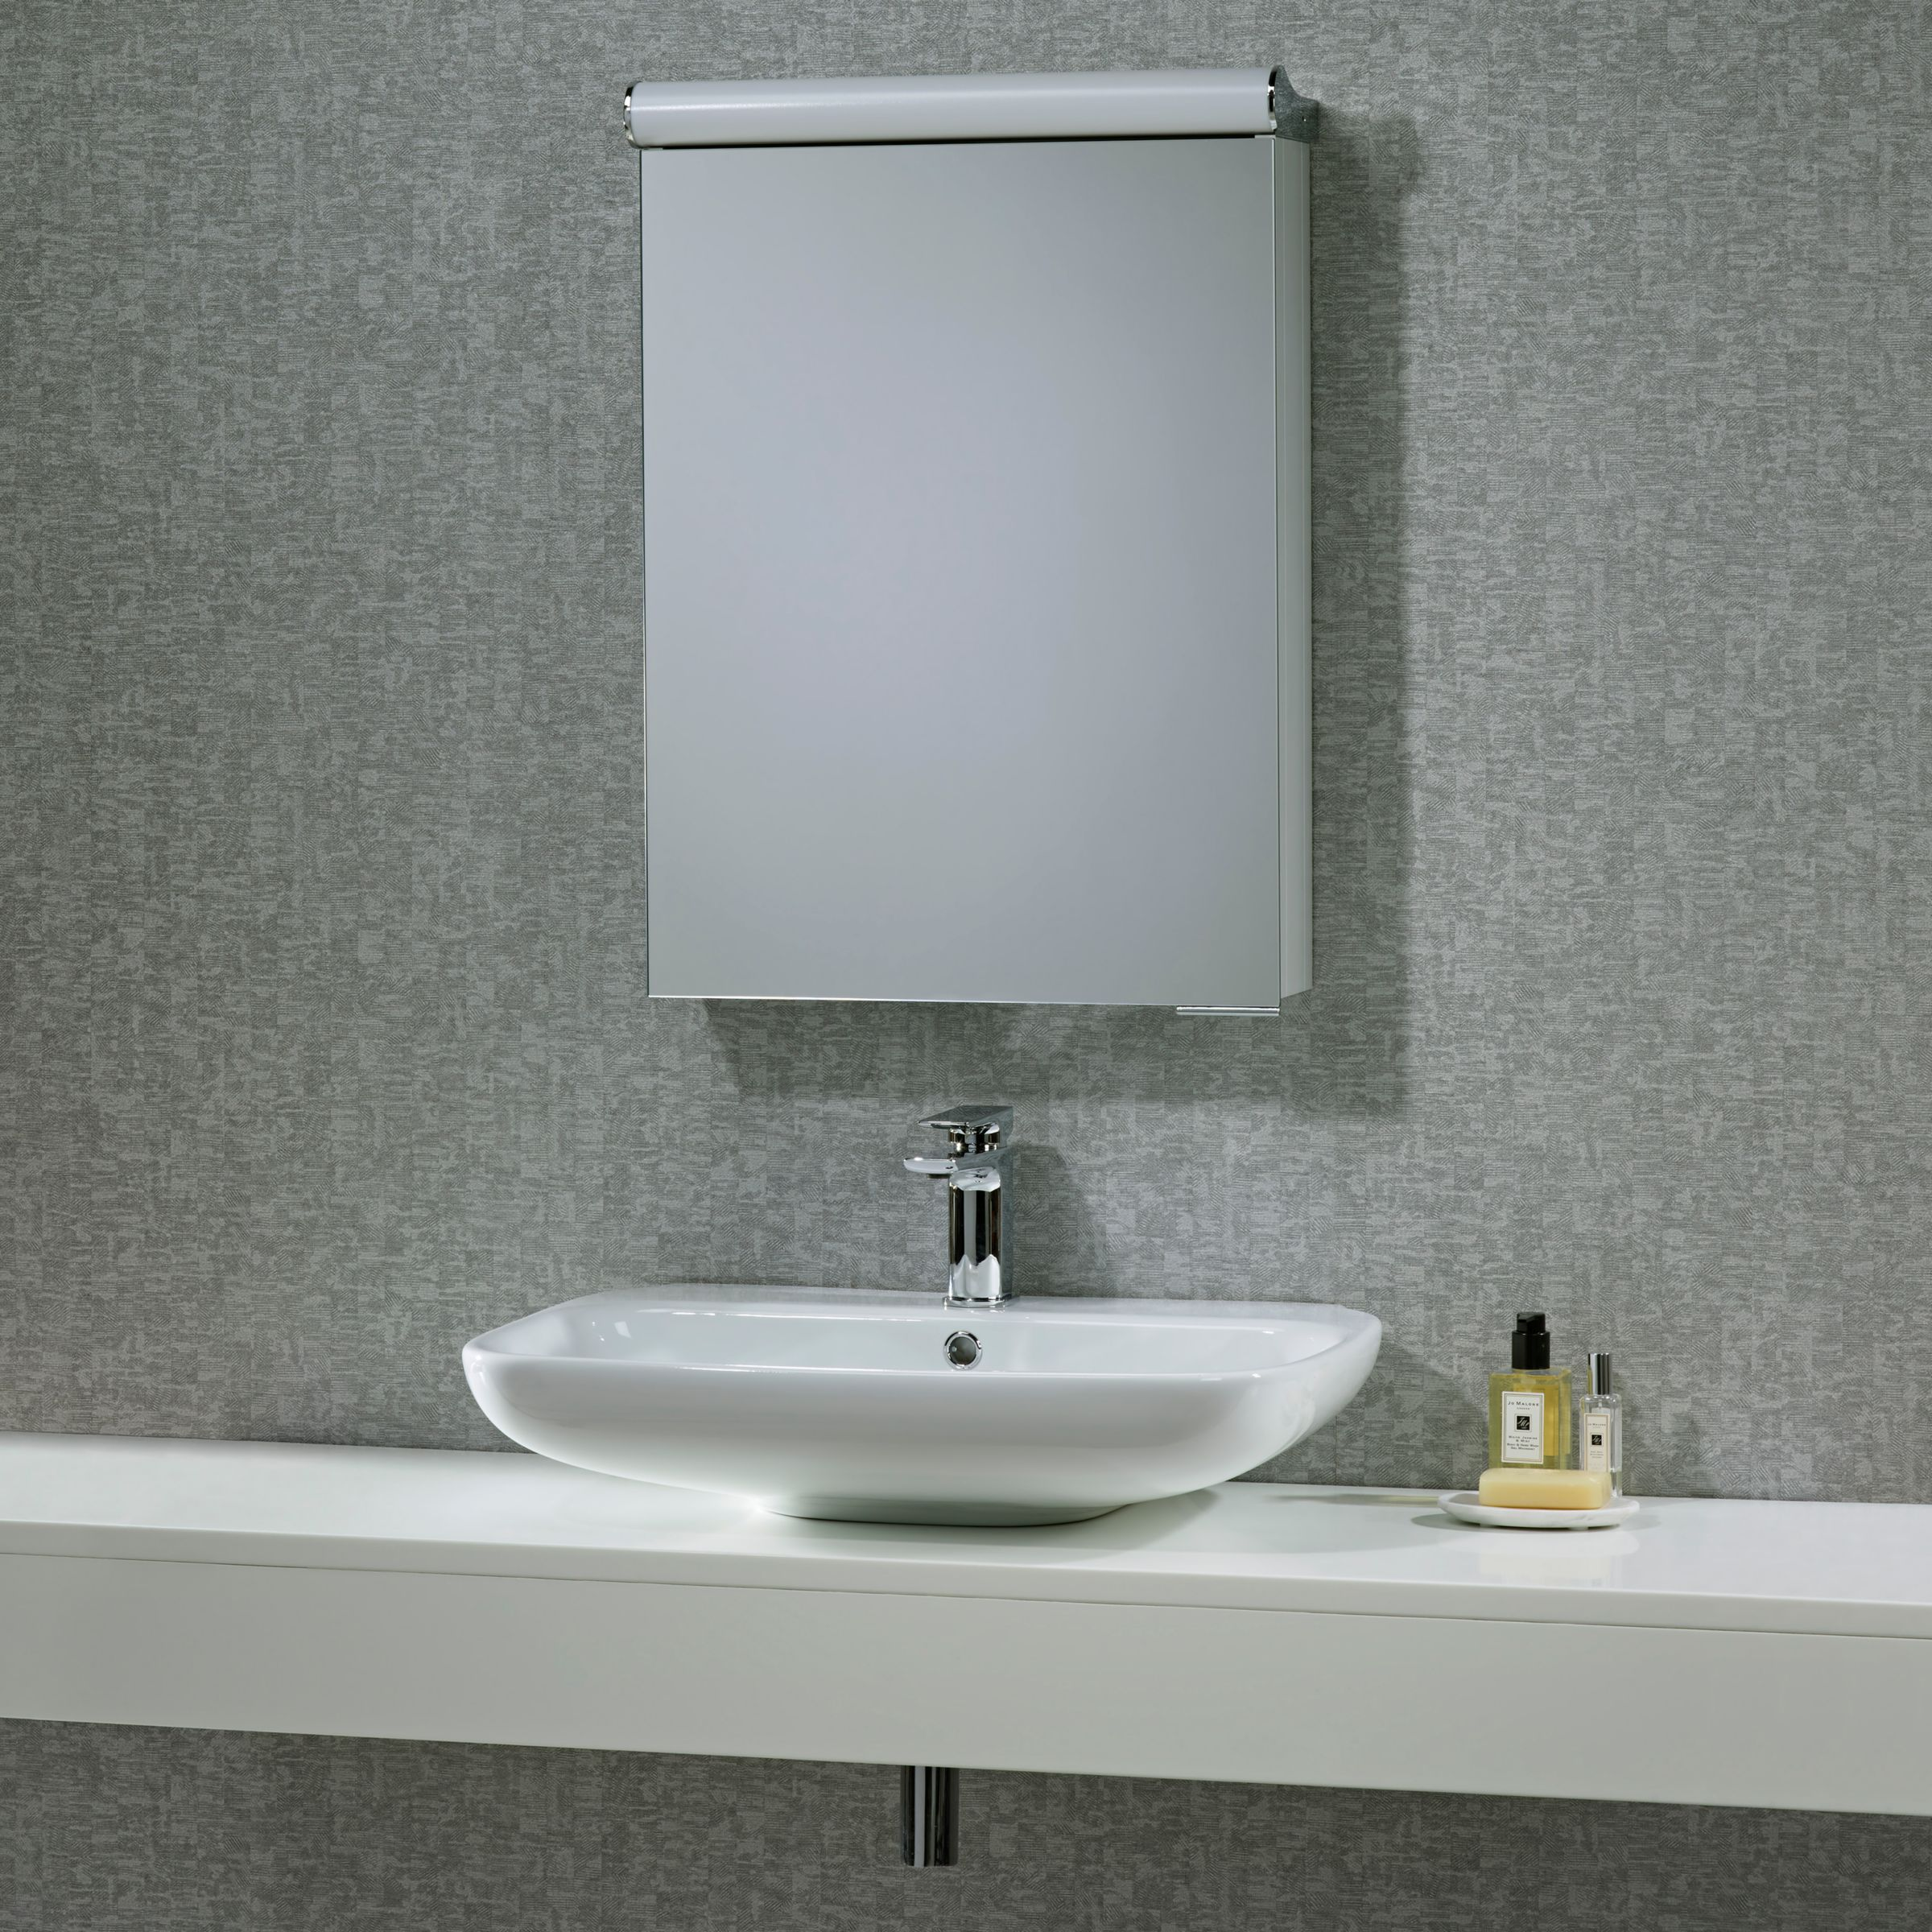 Roper Rhodes Roper Rhodes Elevate Illuminated Single Bathroom Cabinet with Double-Sided Mirror